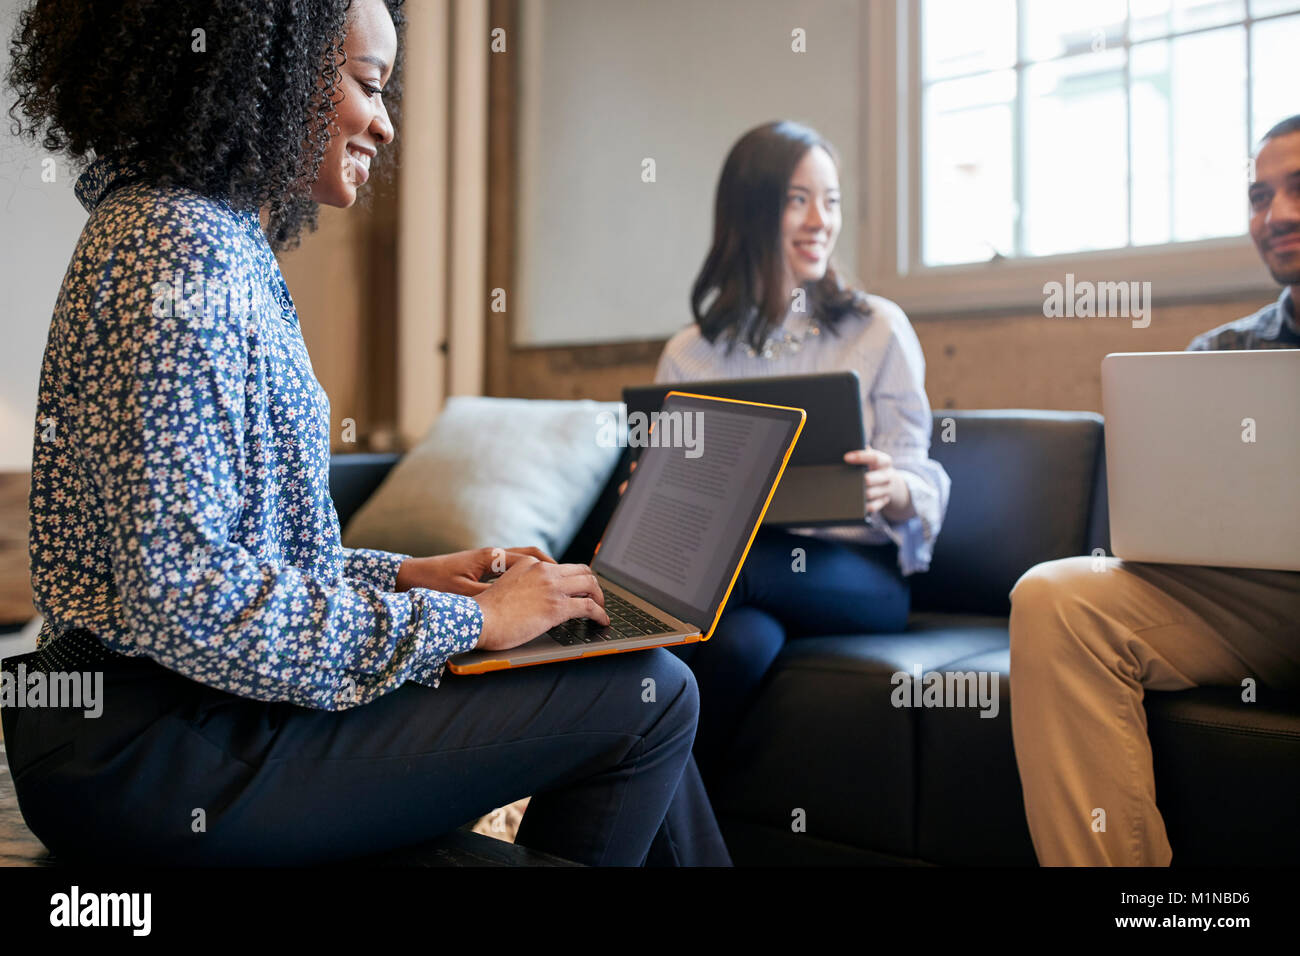 Smiling colleagues working together with laptops, close up Stock Photo